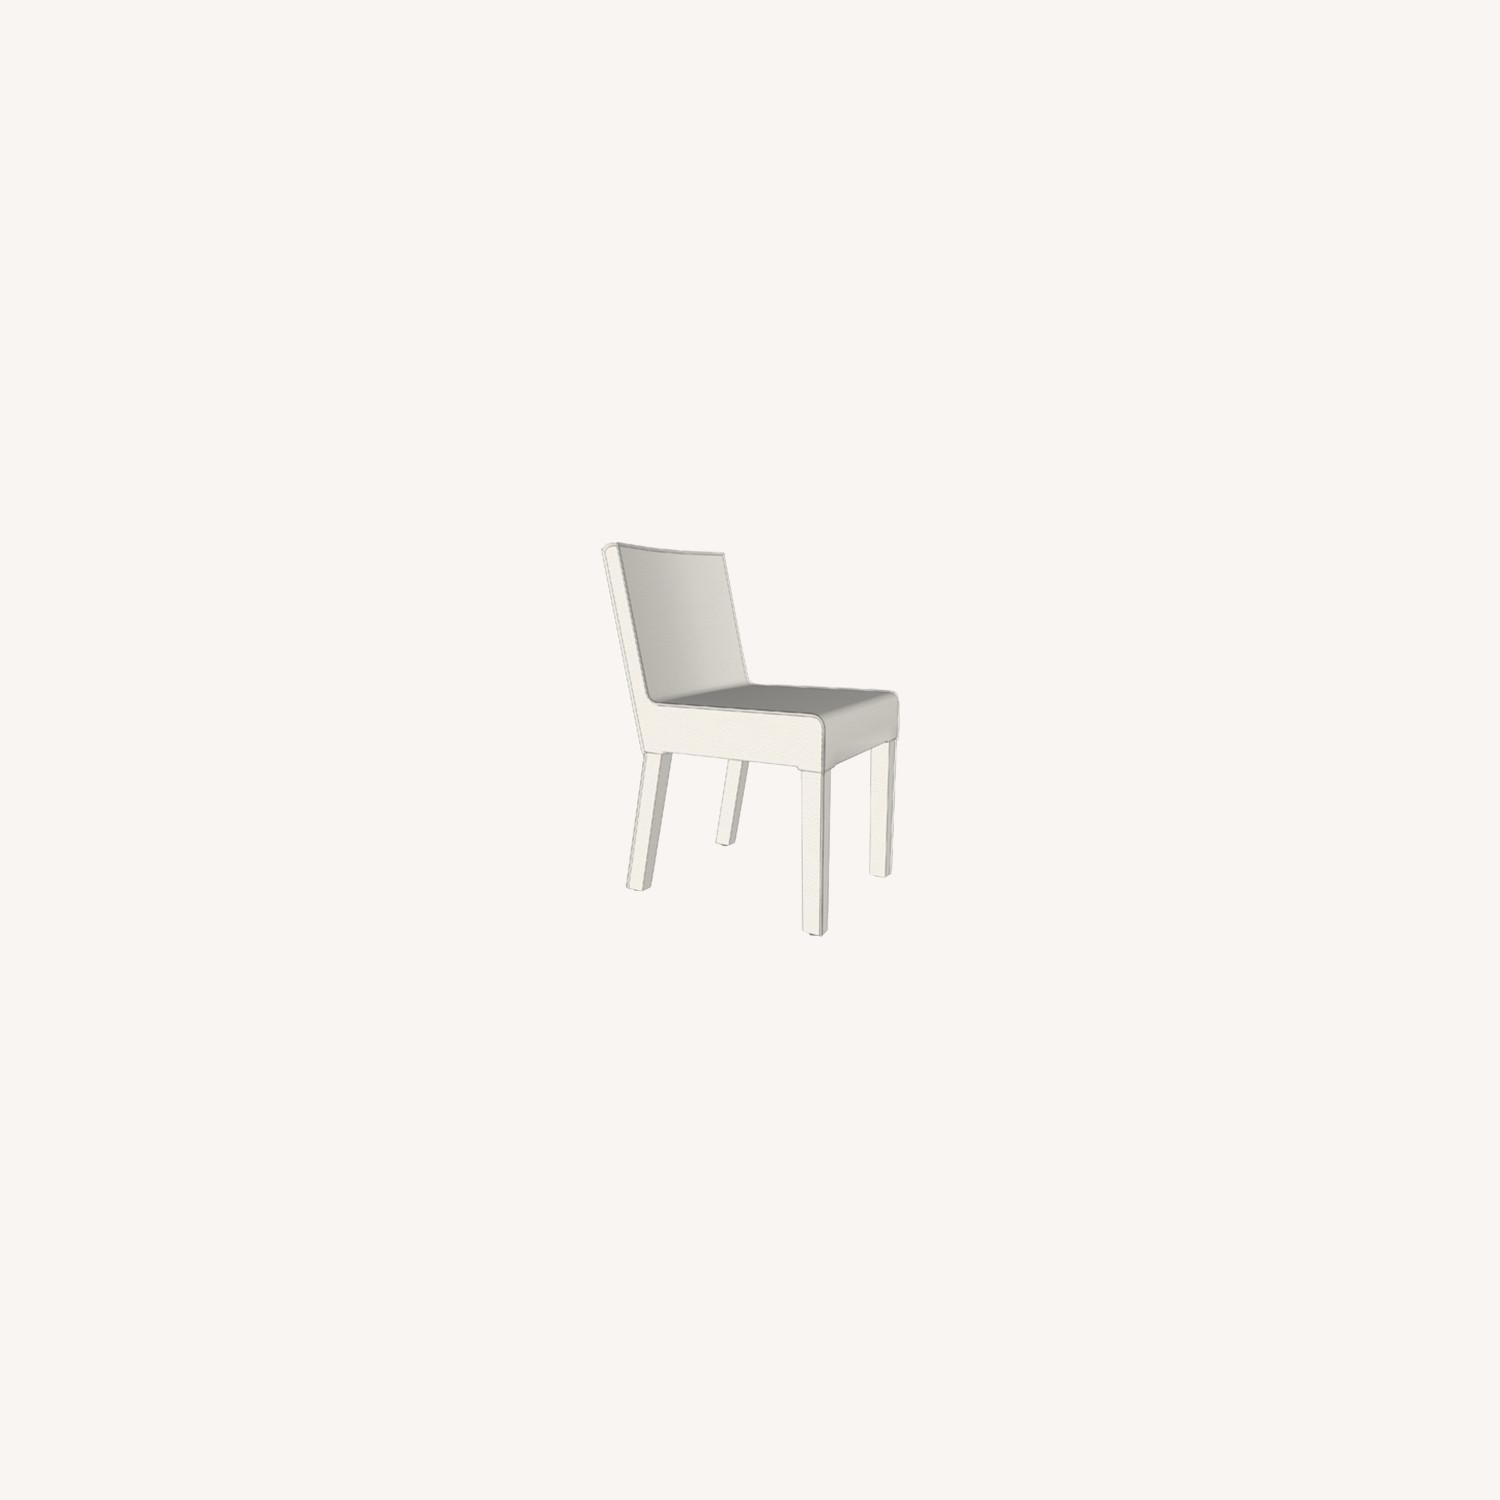 4 Chalk Leather Dining Chairs - image-0